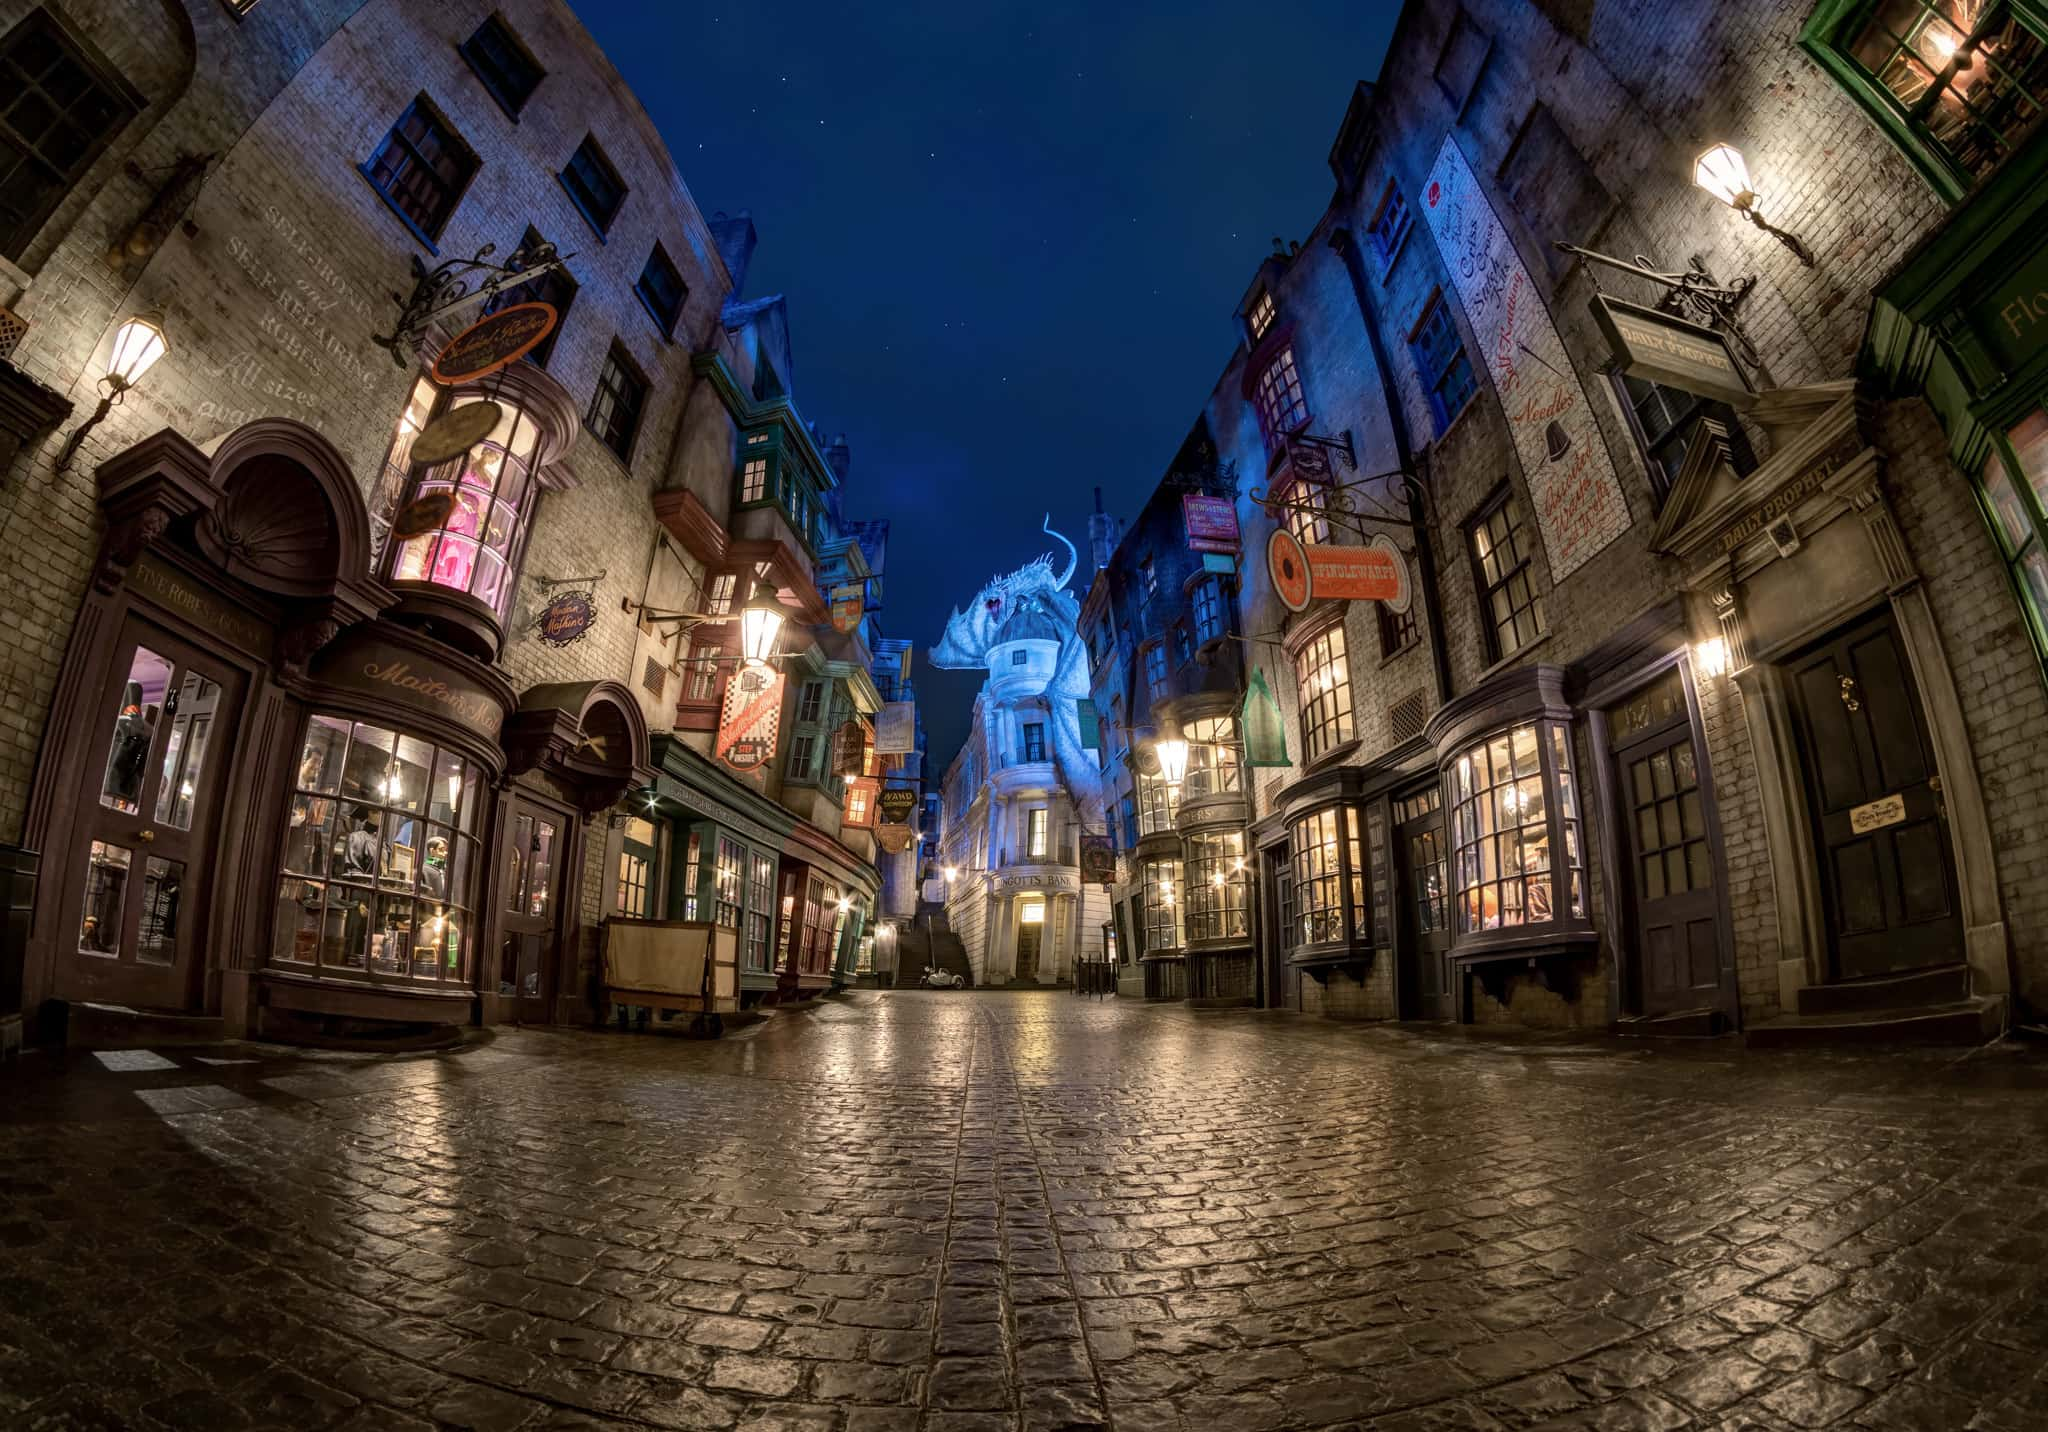 8 breathtaking pictures of Diagon Alley at night